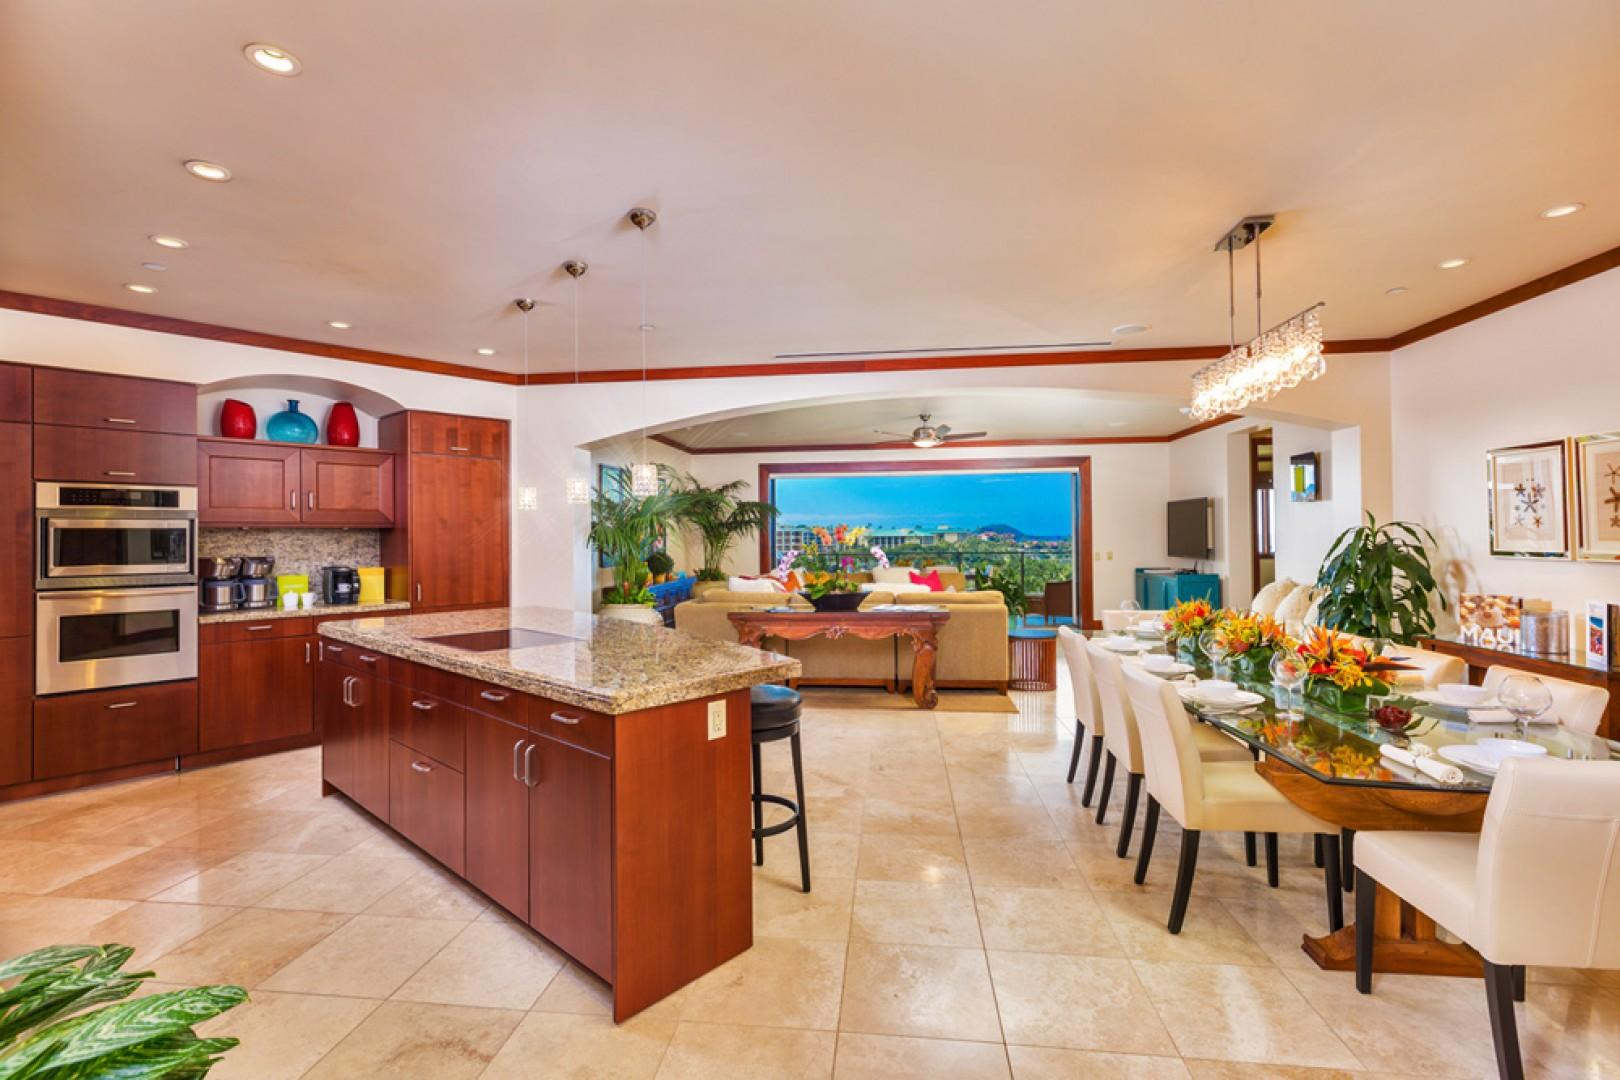 L509 Sandcastles Suite Spacious Great Room with Gourmet Kitchen with Five Bar Stools, Indoor Dining Table Seats Eight to Ten Guests and Large Ocean View Living Room